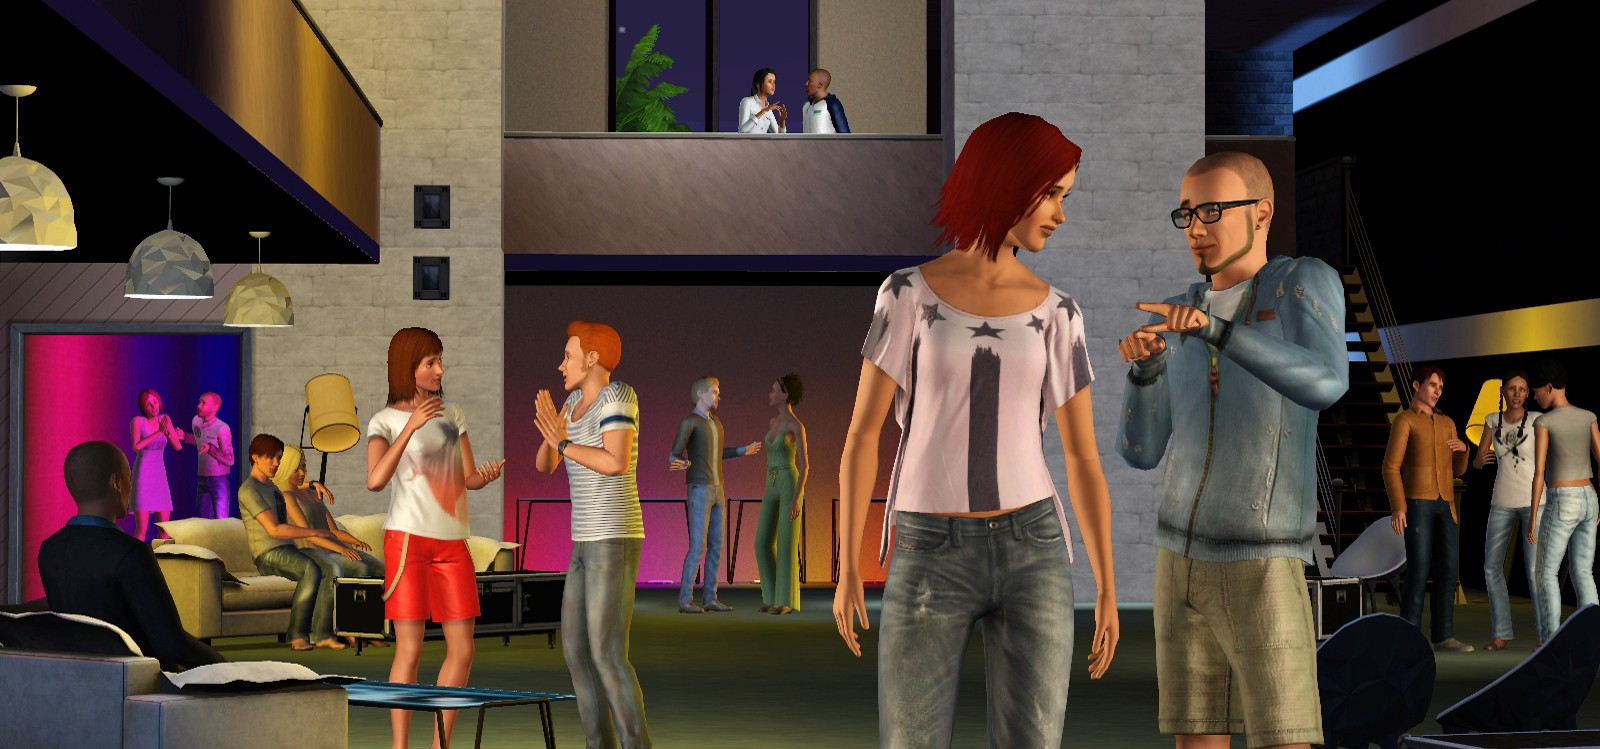 The sims 3 dating wiki